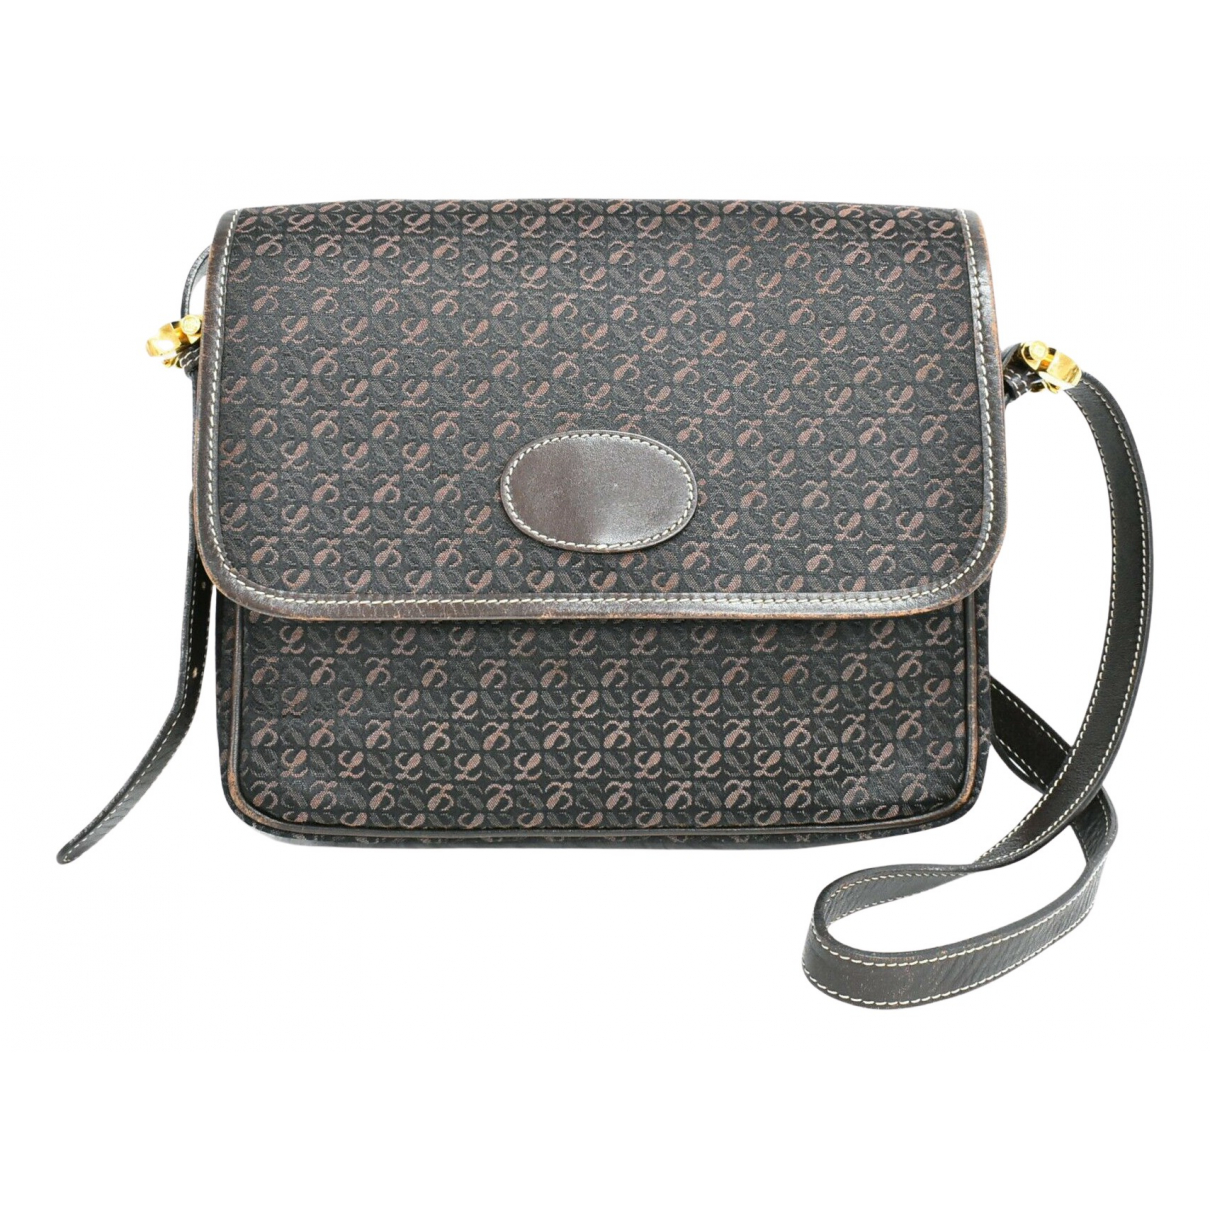 Loewe N Grey Cloth handbag for Women N